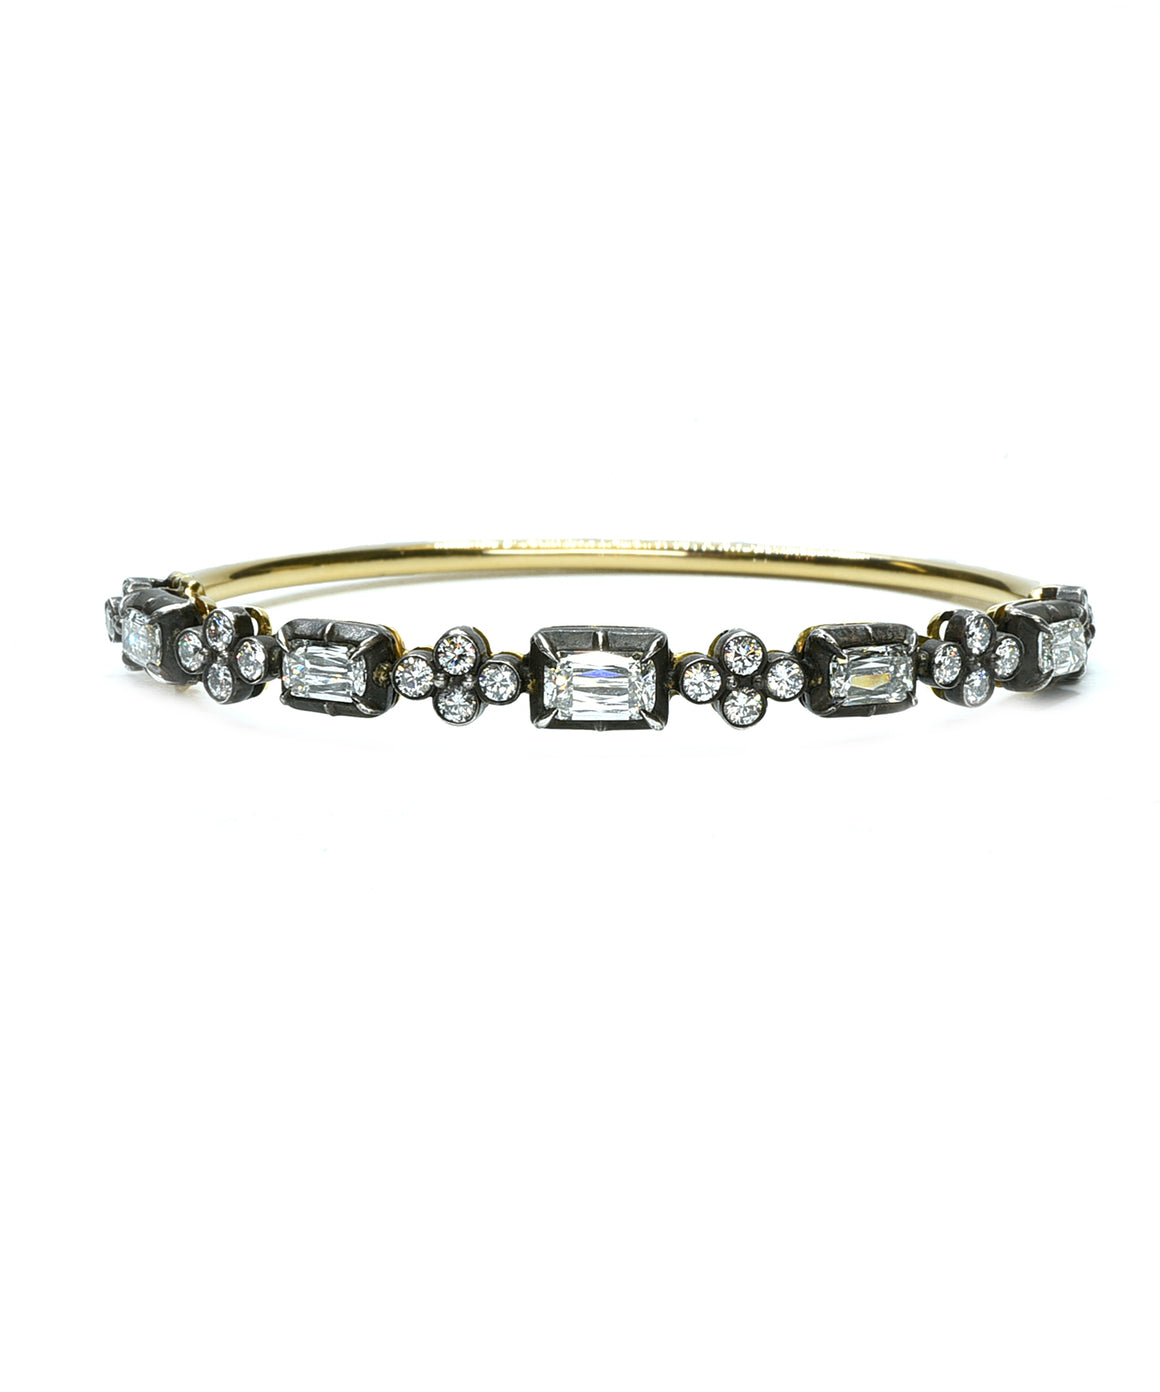 Bangle bracelet with emerald cut diamonds